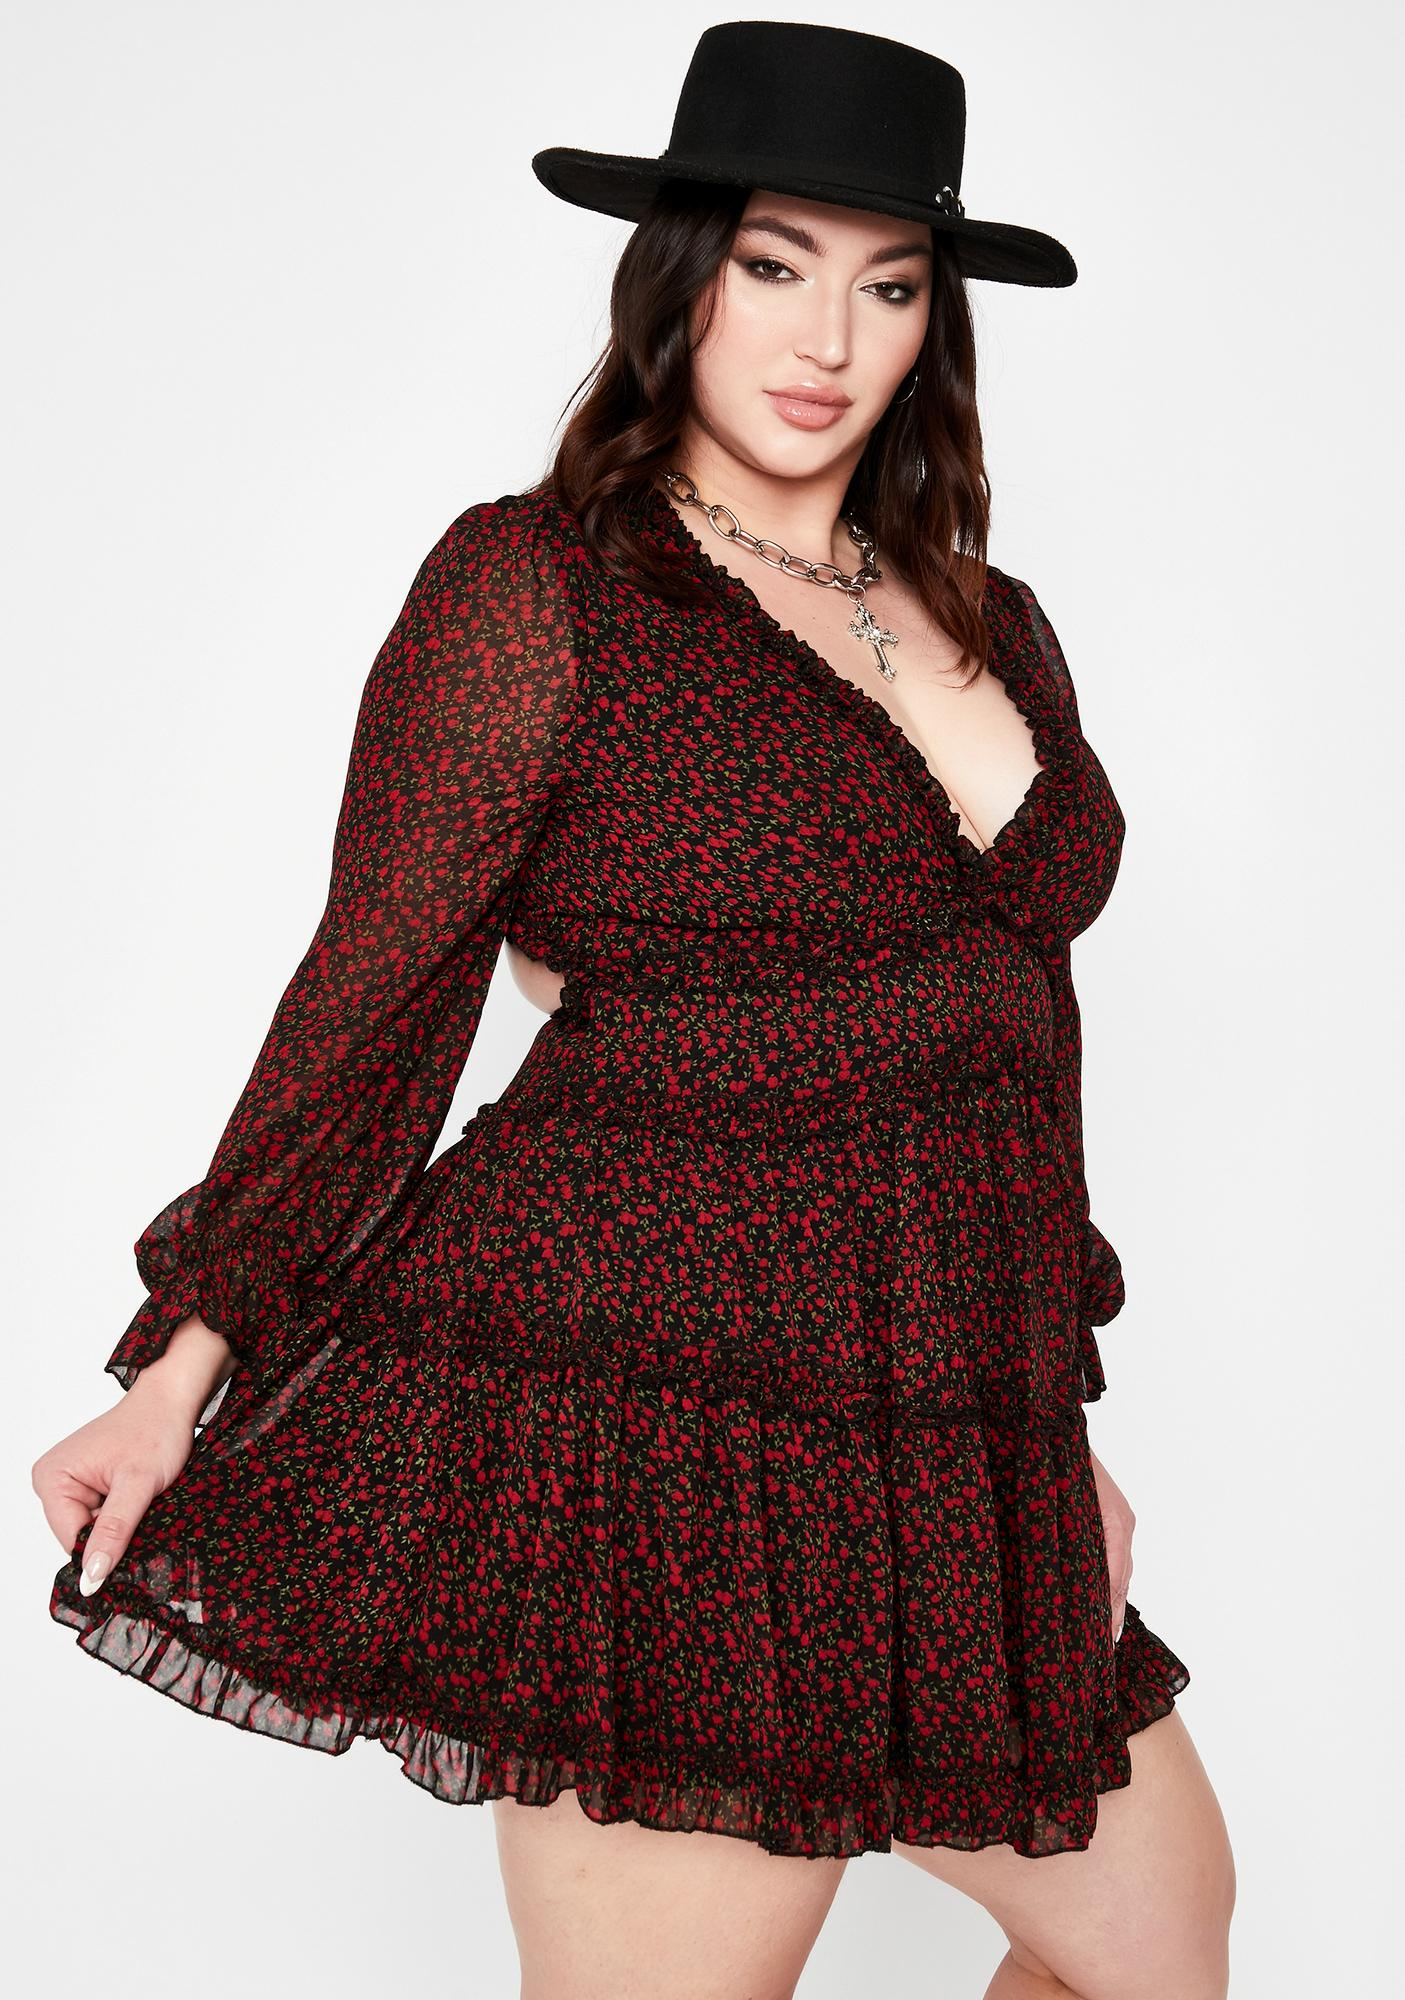 So Rosey Posies Floral Dress